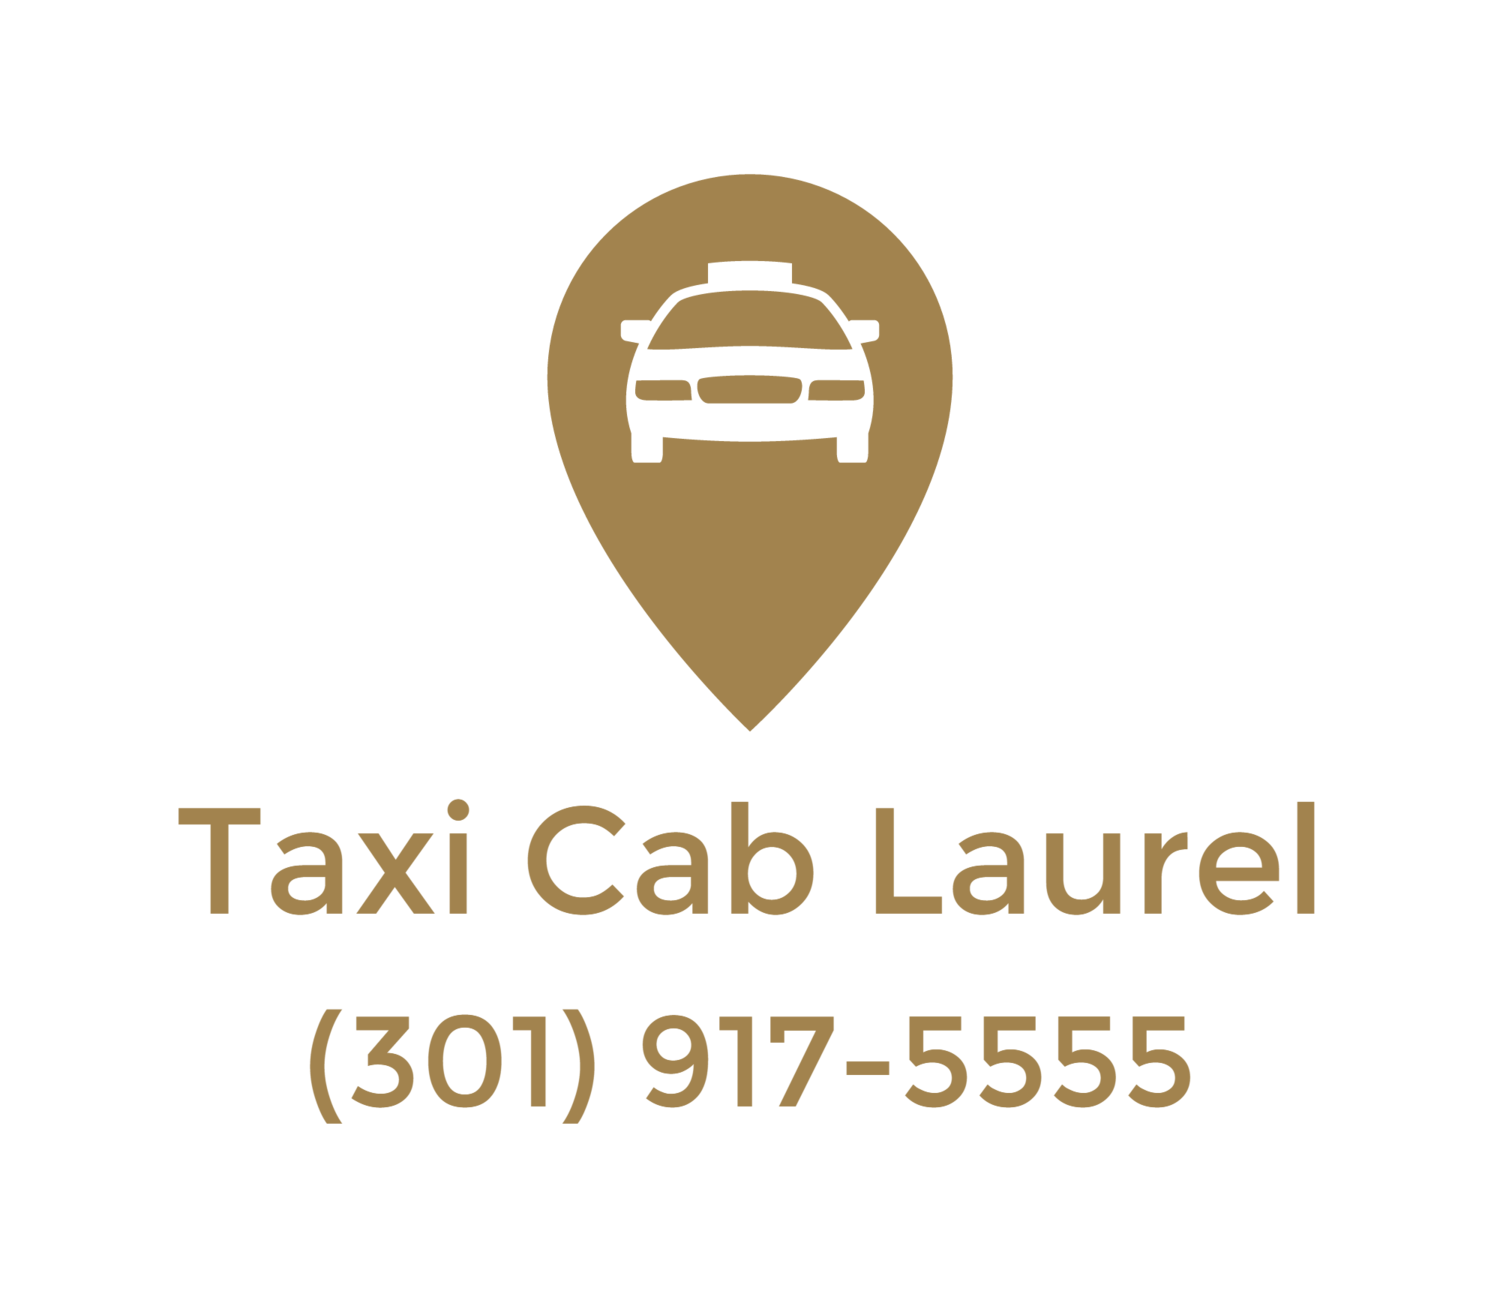 Laurel Taxi Cab Service in Laurel, MD (301)917-5555 Fast Airport Taxi Cab